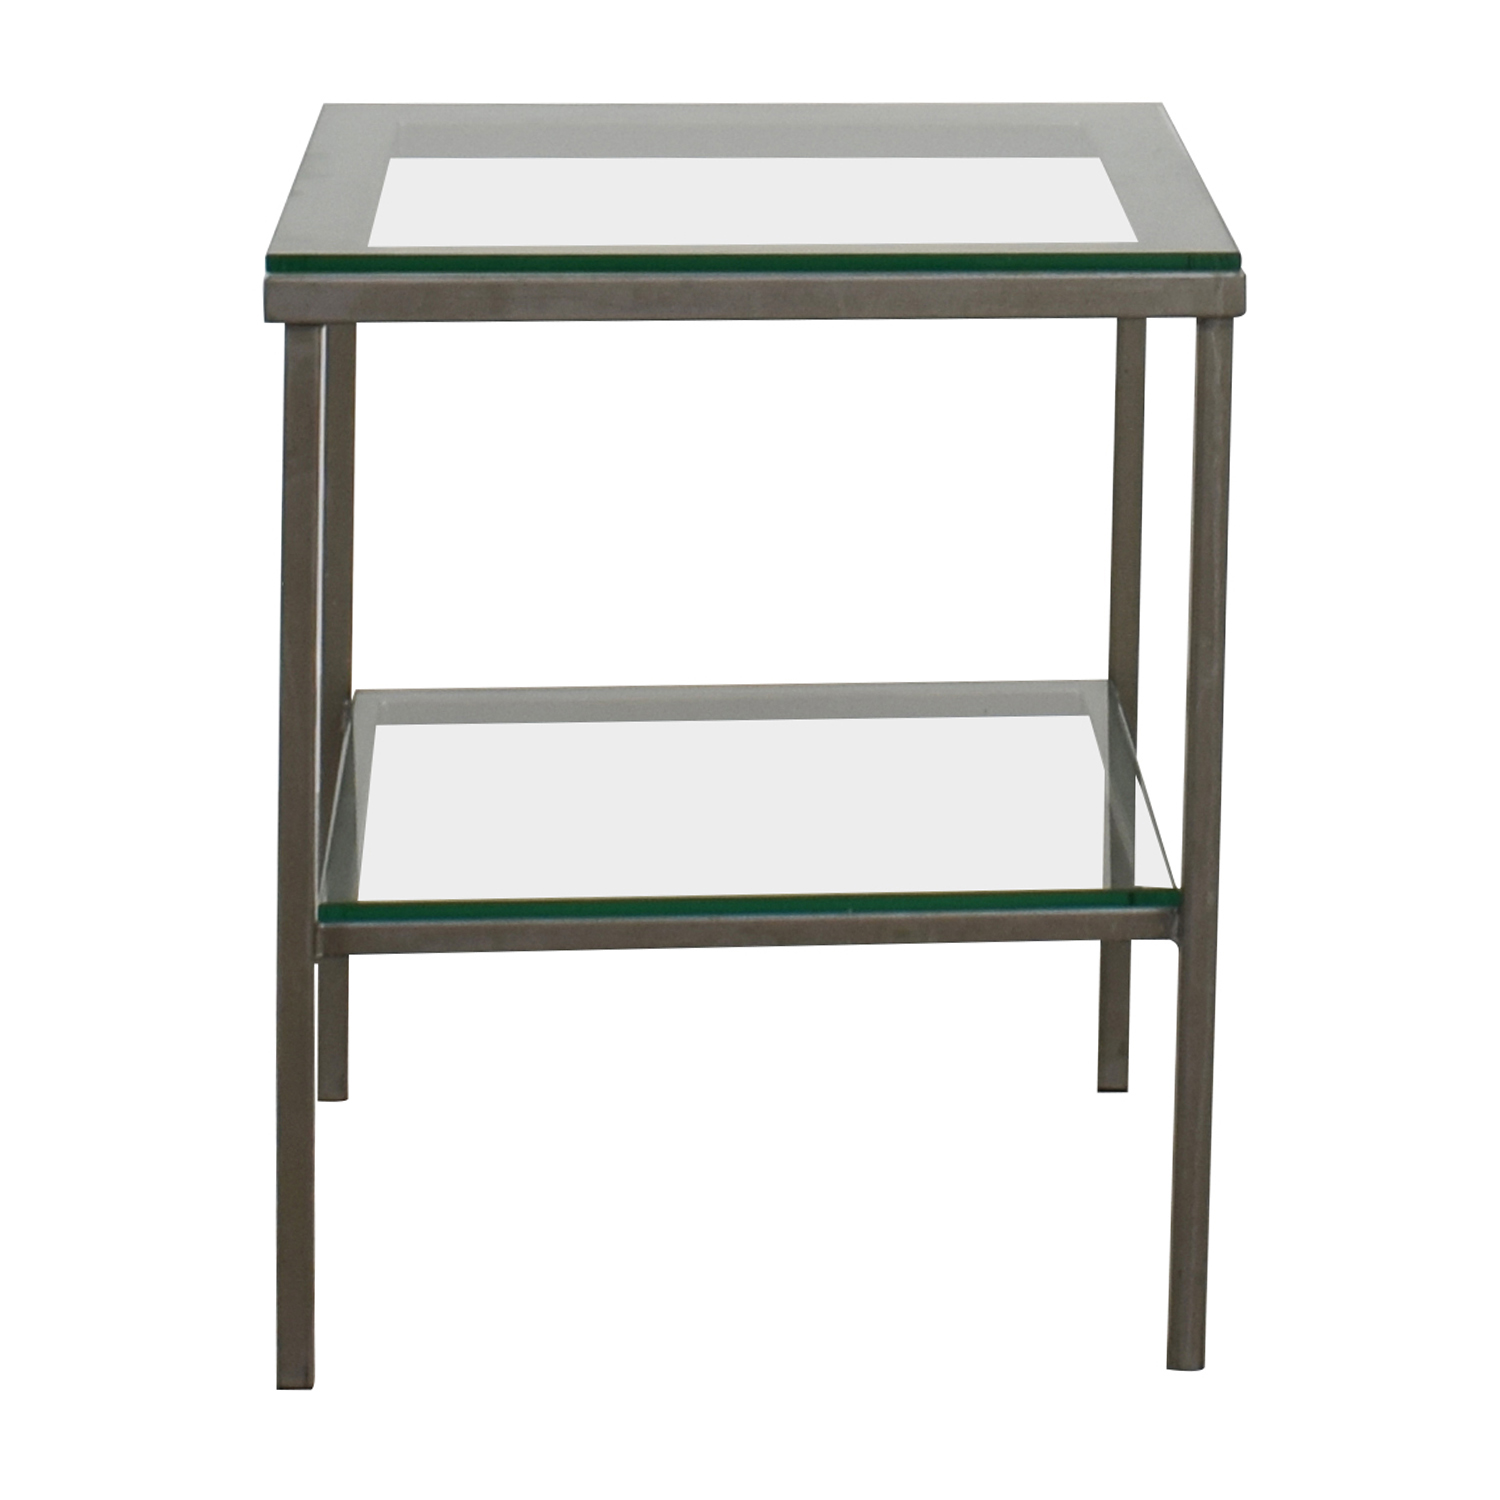 Crate & Barrel Glass Chrome Side Table sale